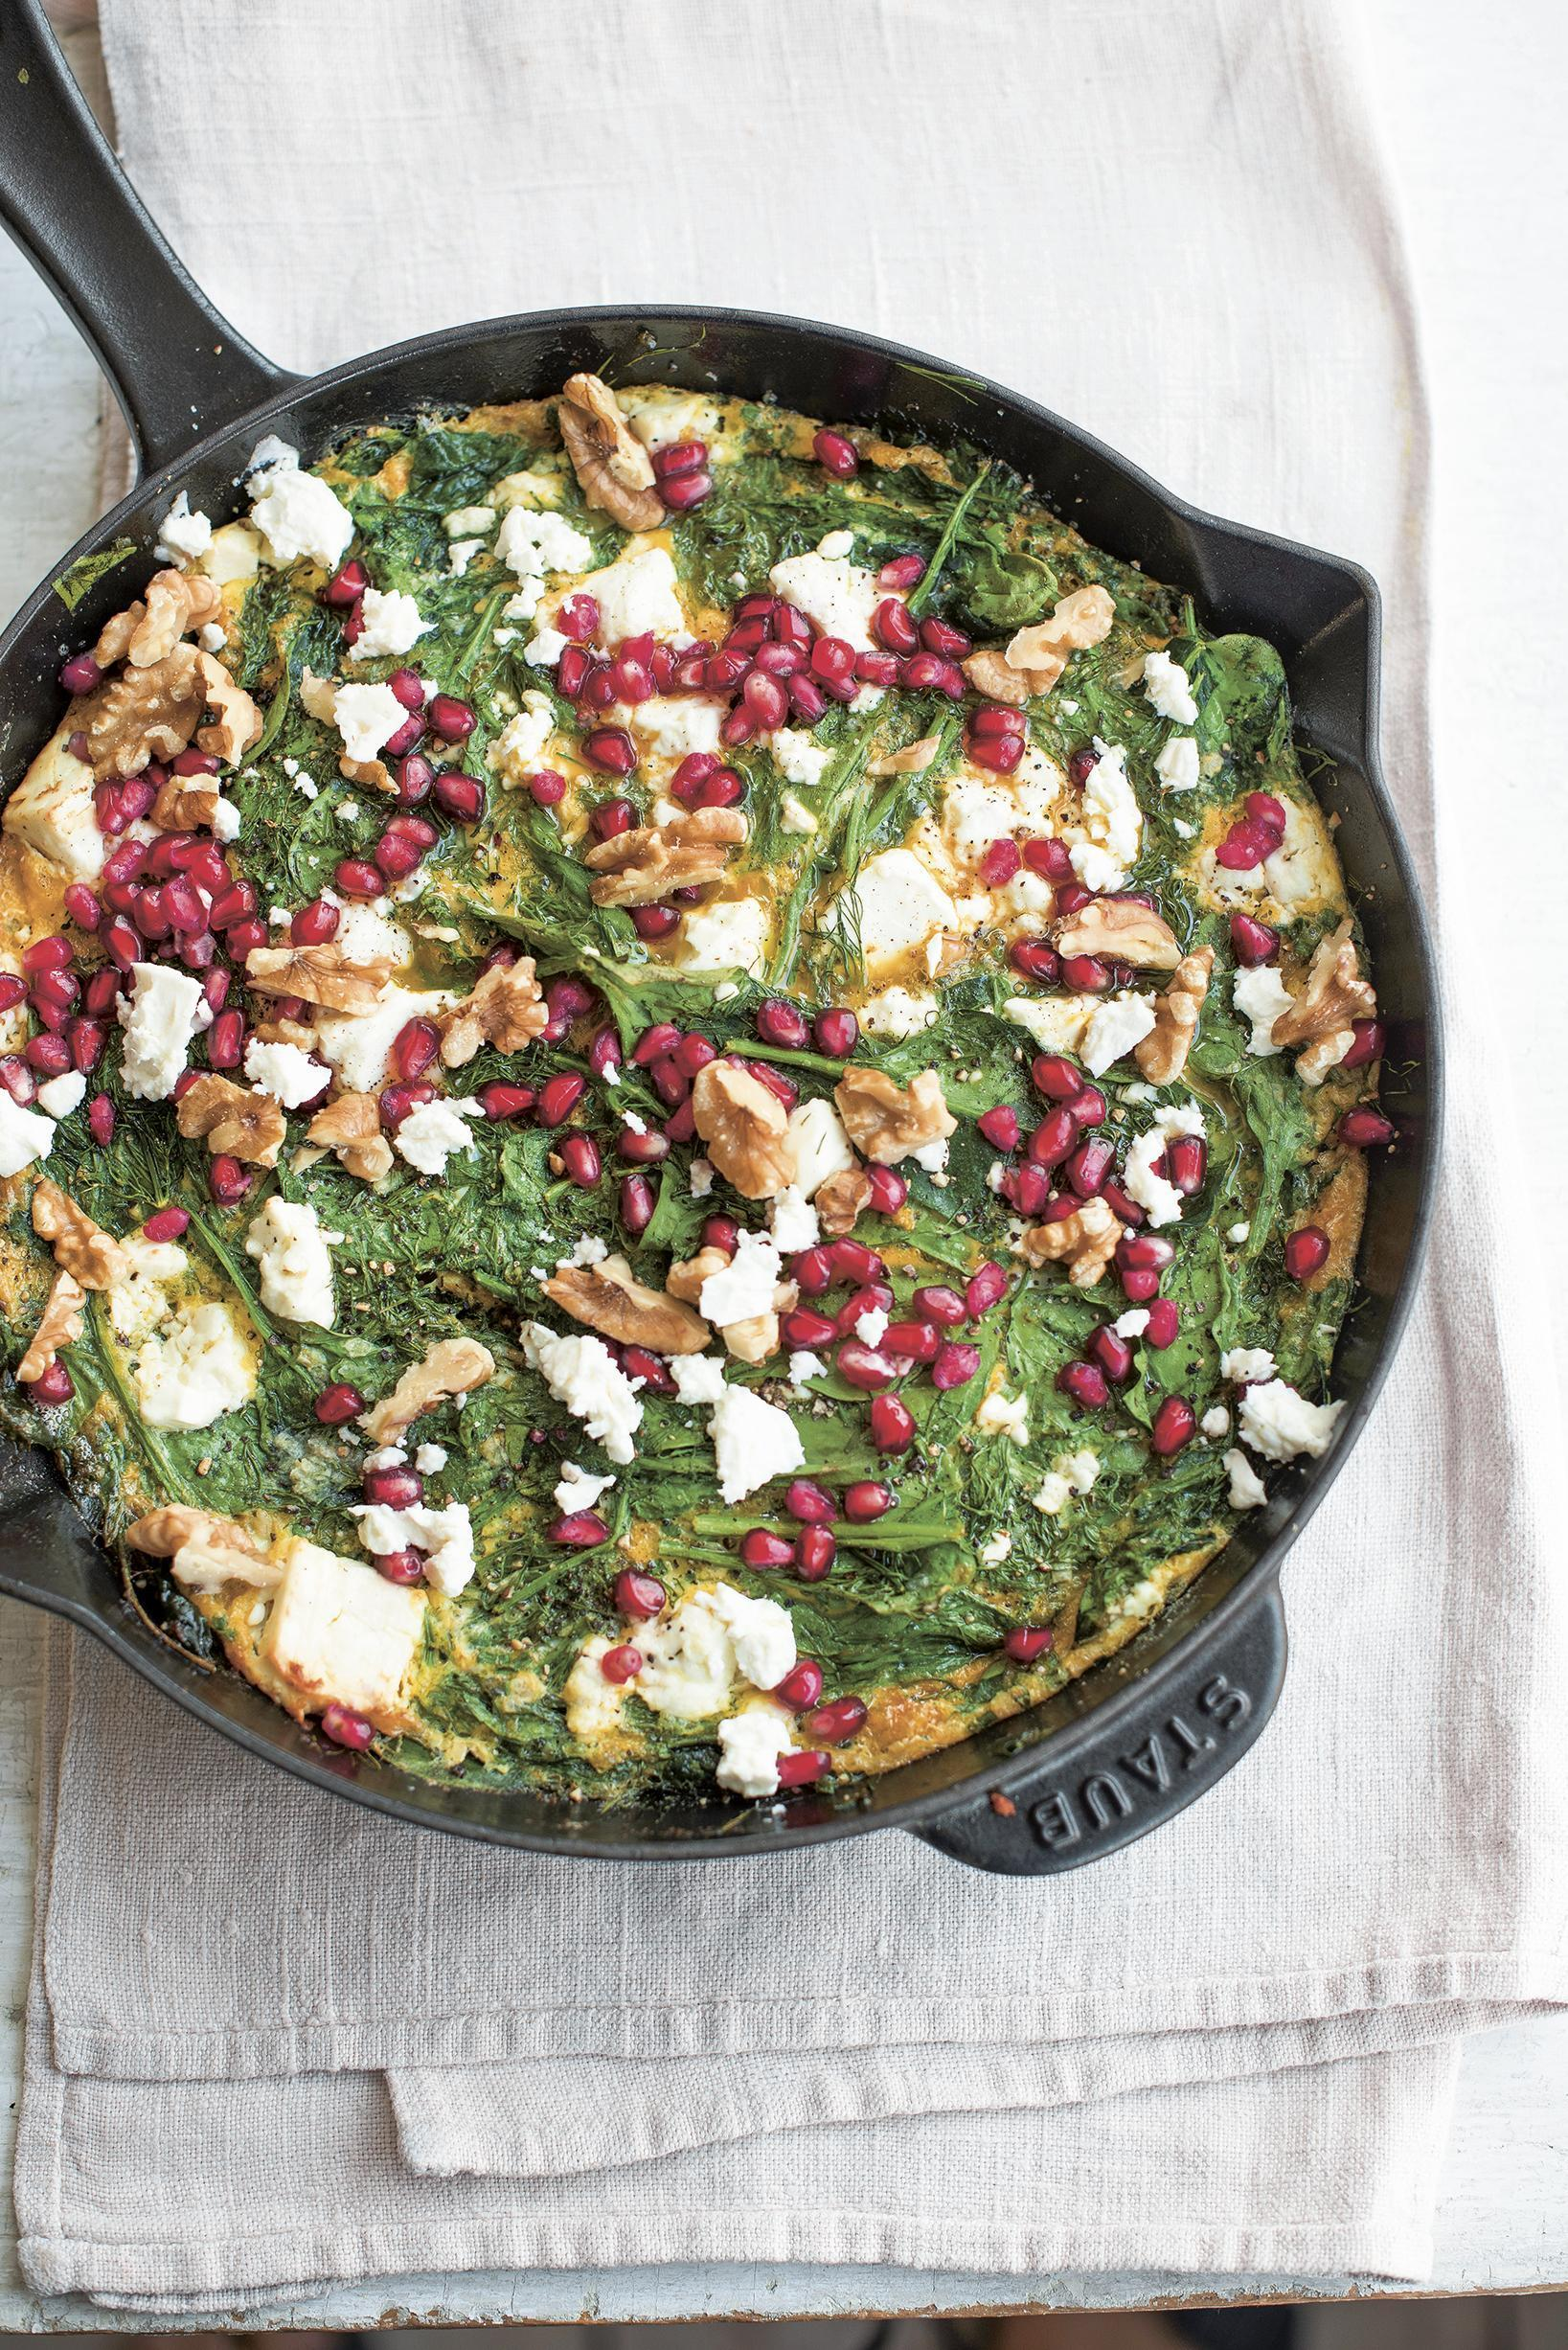 Herby spinach and feta frittata